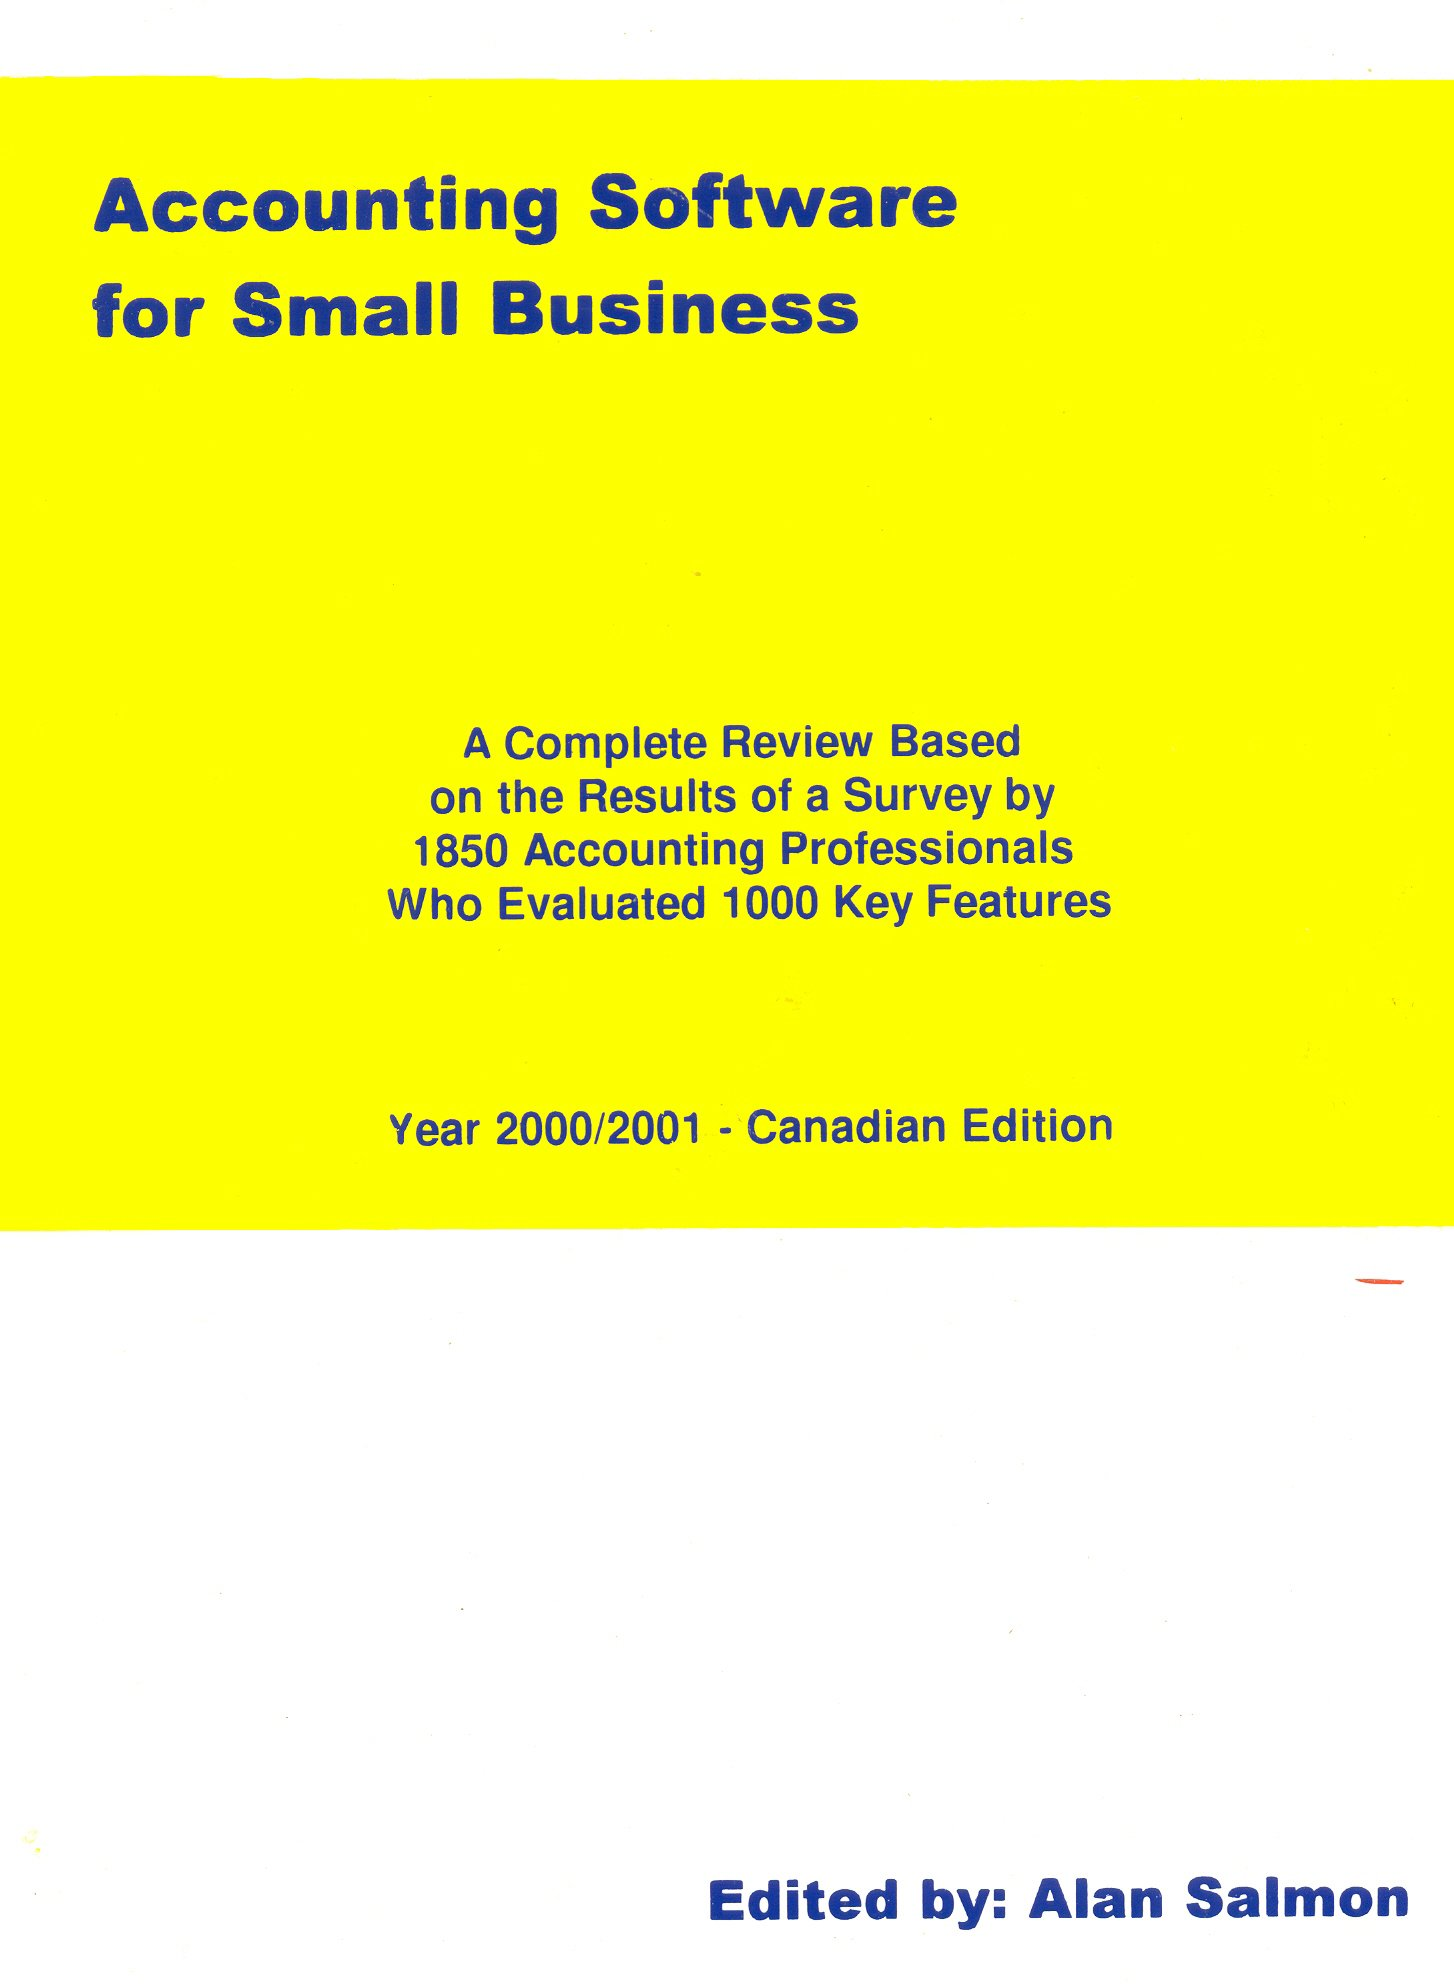 Amazon com: Accounting Software for Small Business: A